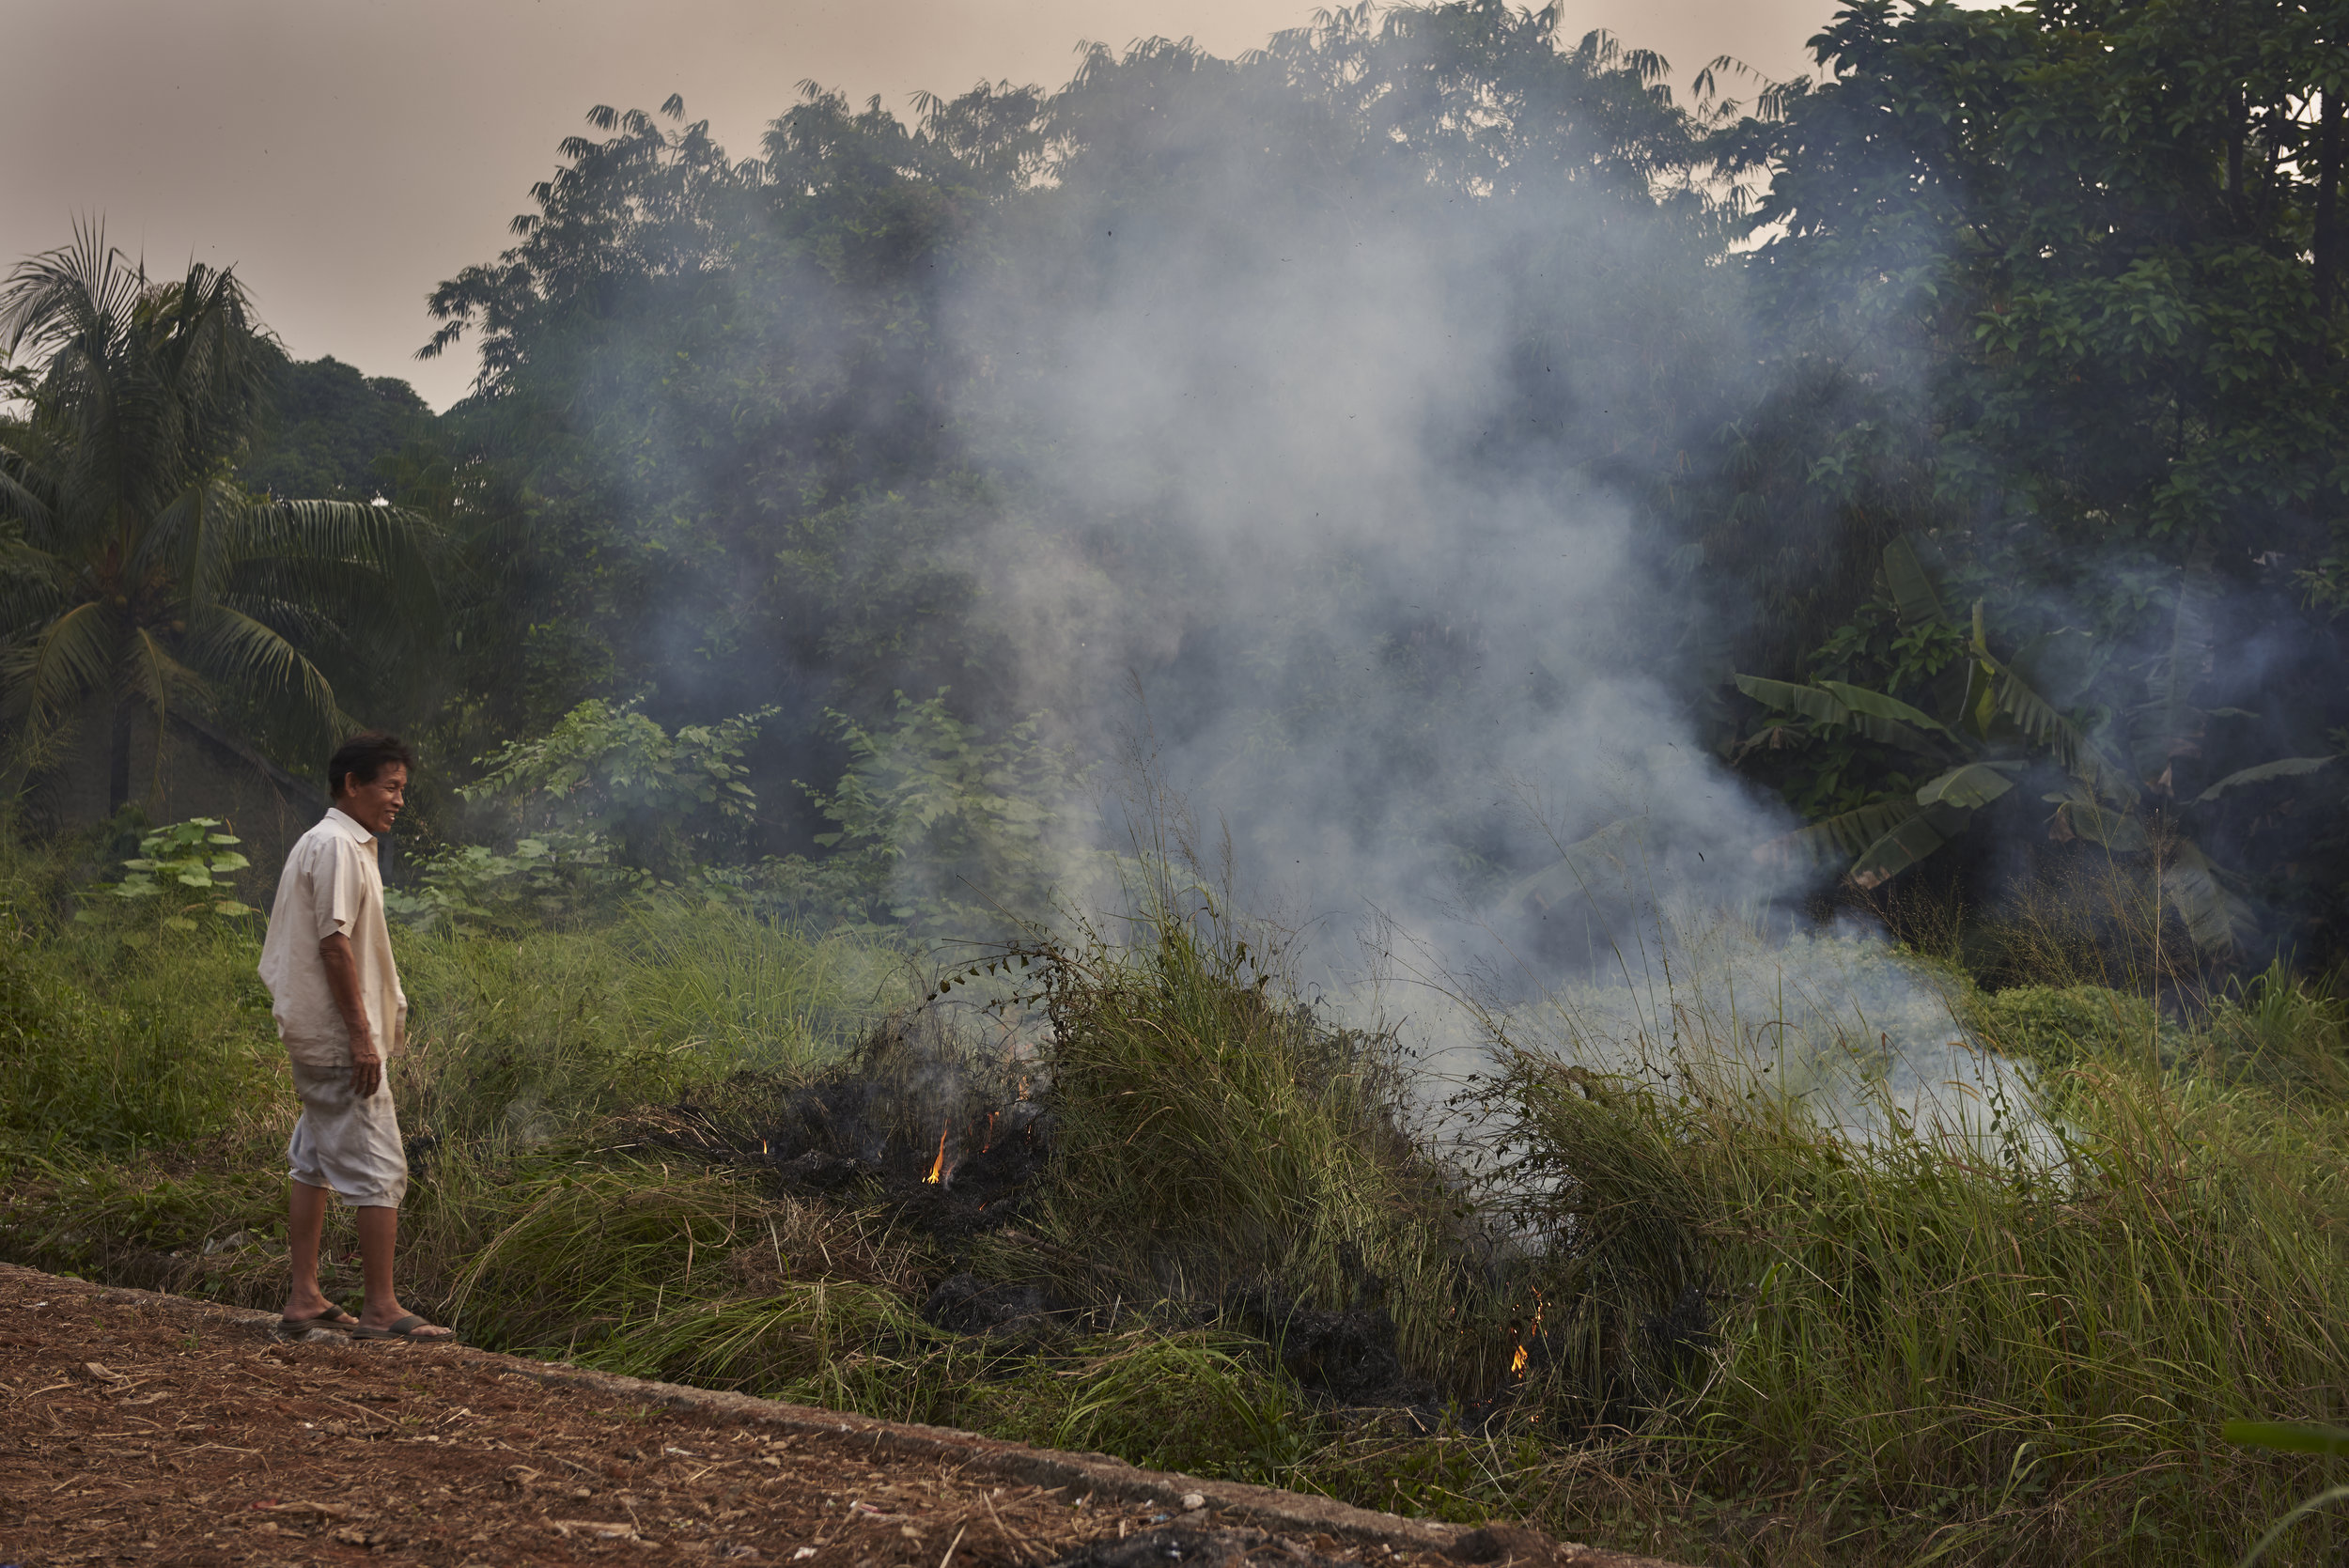 Over 90% of the world's population breathe polluted air. - Photo: UNICEF Indonesia